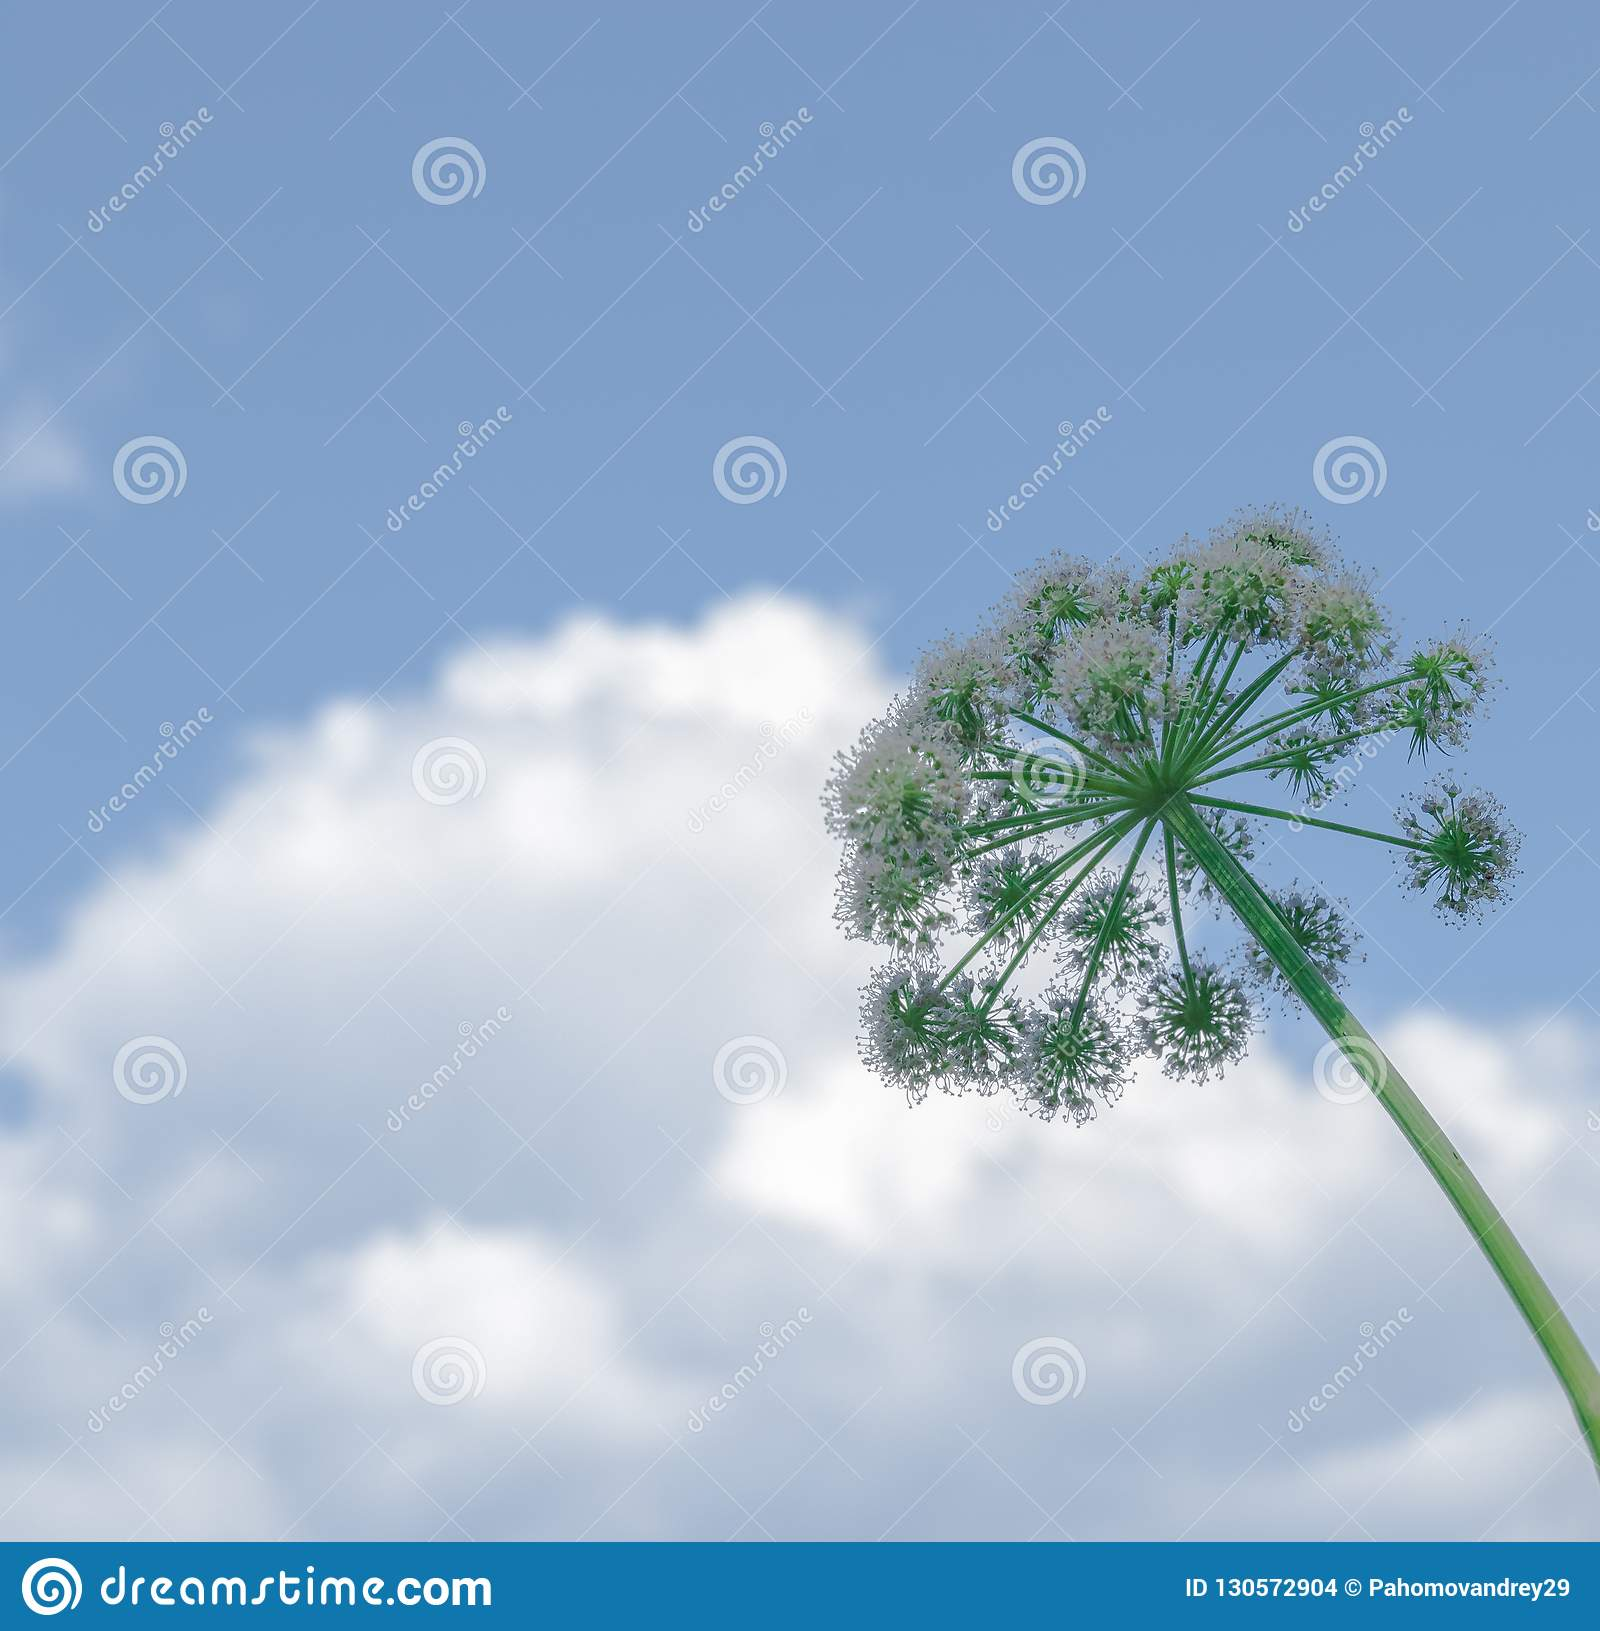 Color Photo Of White Dandelion Against Blue Sky With